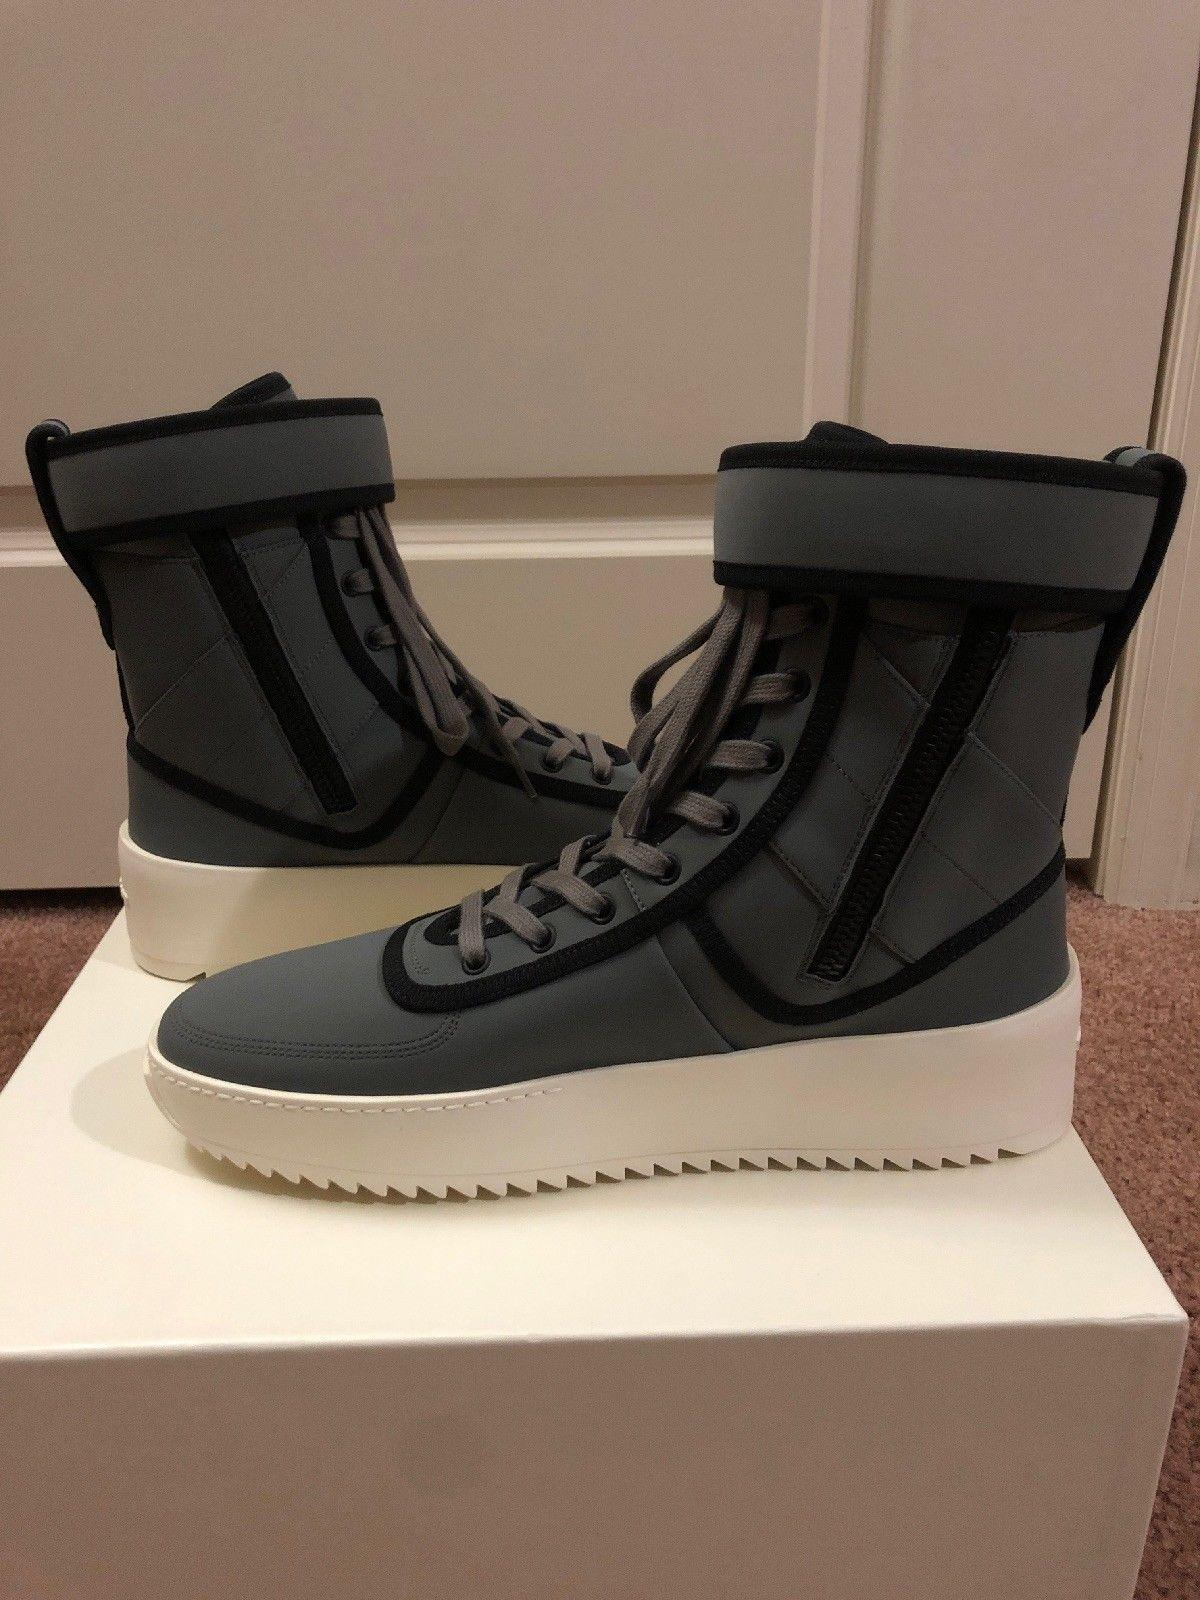 Fear Of God Military Boot OG Gum Bottom FOG Jerry Lorenzo men women boots shoes  4